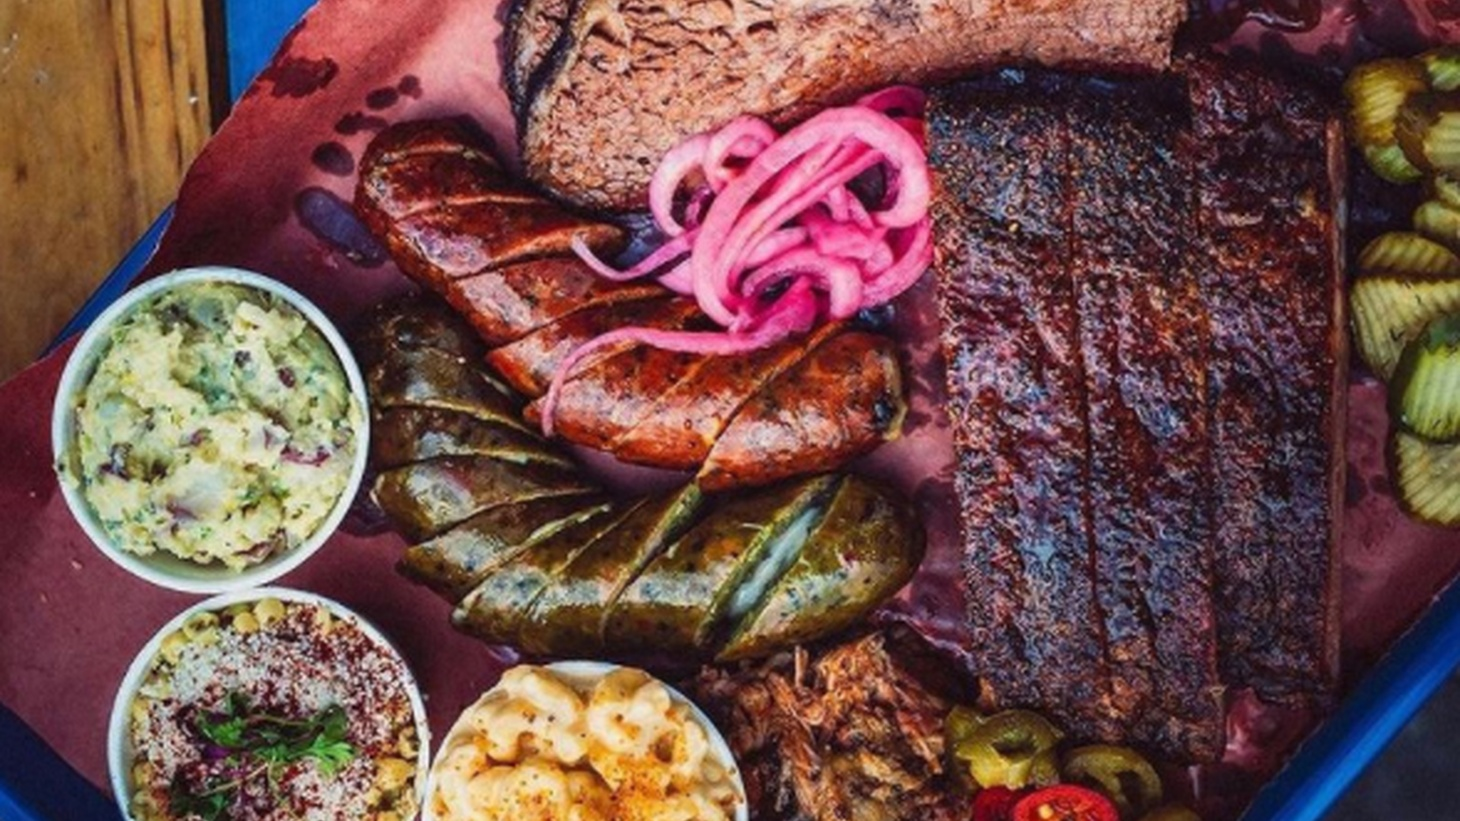 Andrew Munoz of Moo's Craft Barbecue is serving up Texas-style barbecue with the trinity of brisket, sausages, and ribs.